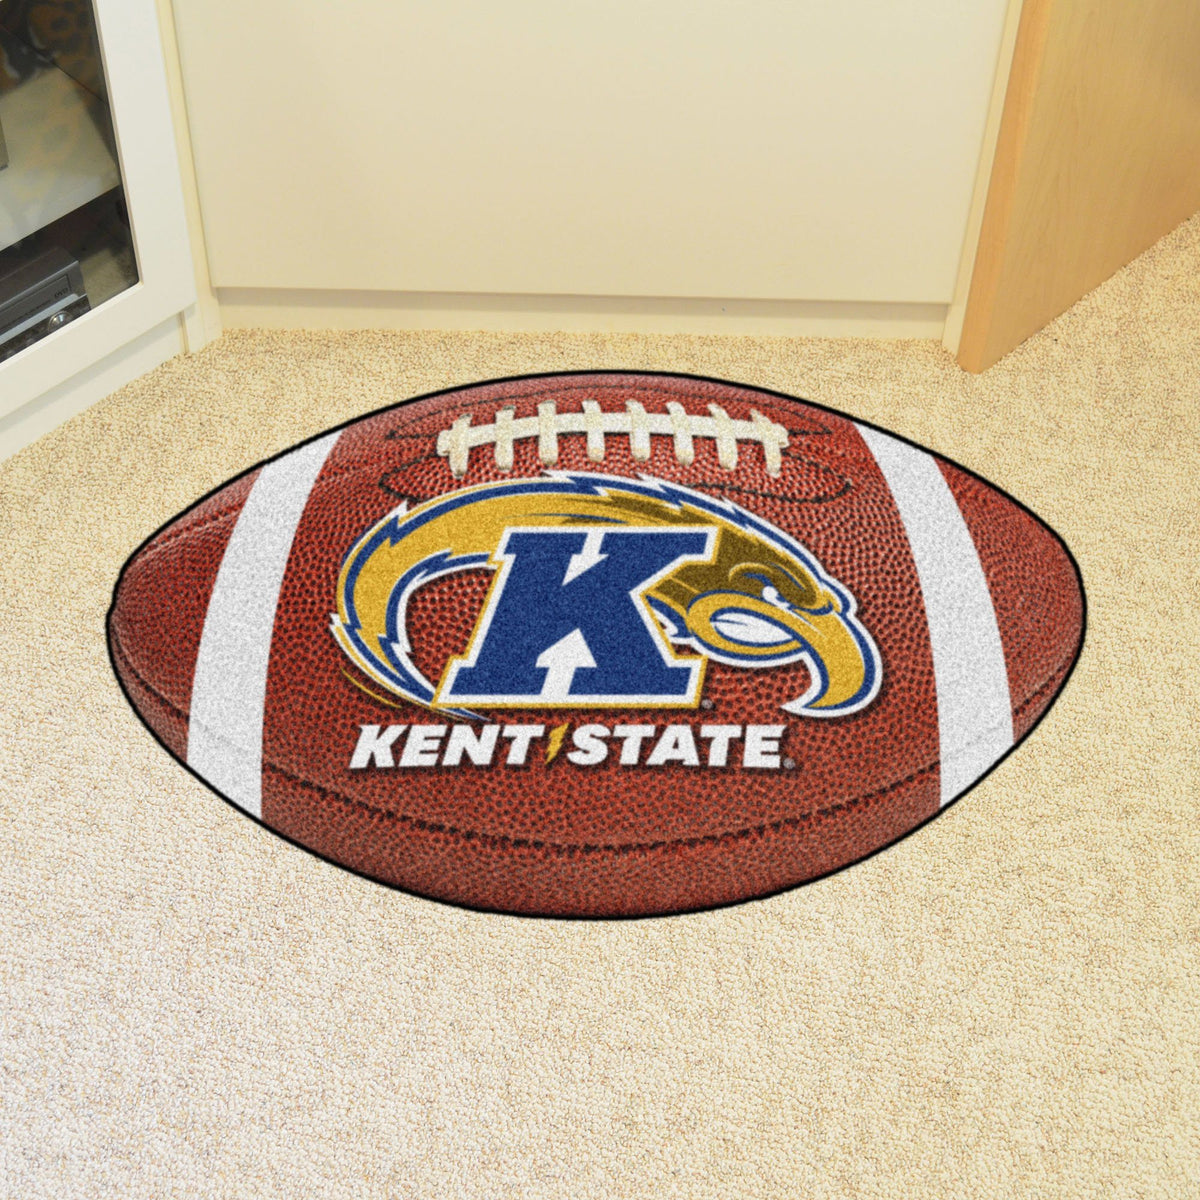 Collegiate - Football Mat: A - K Collegiate Mats, Rectangular Mats, Football Mat, Collegiate, Home Fan Mats Kent State